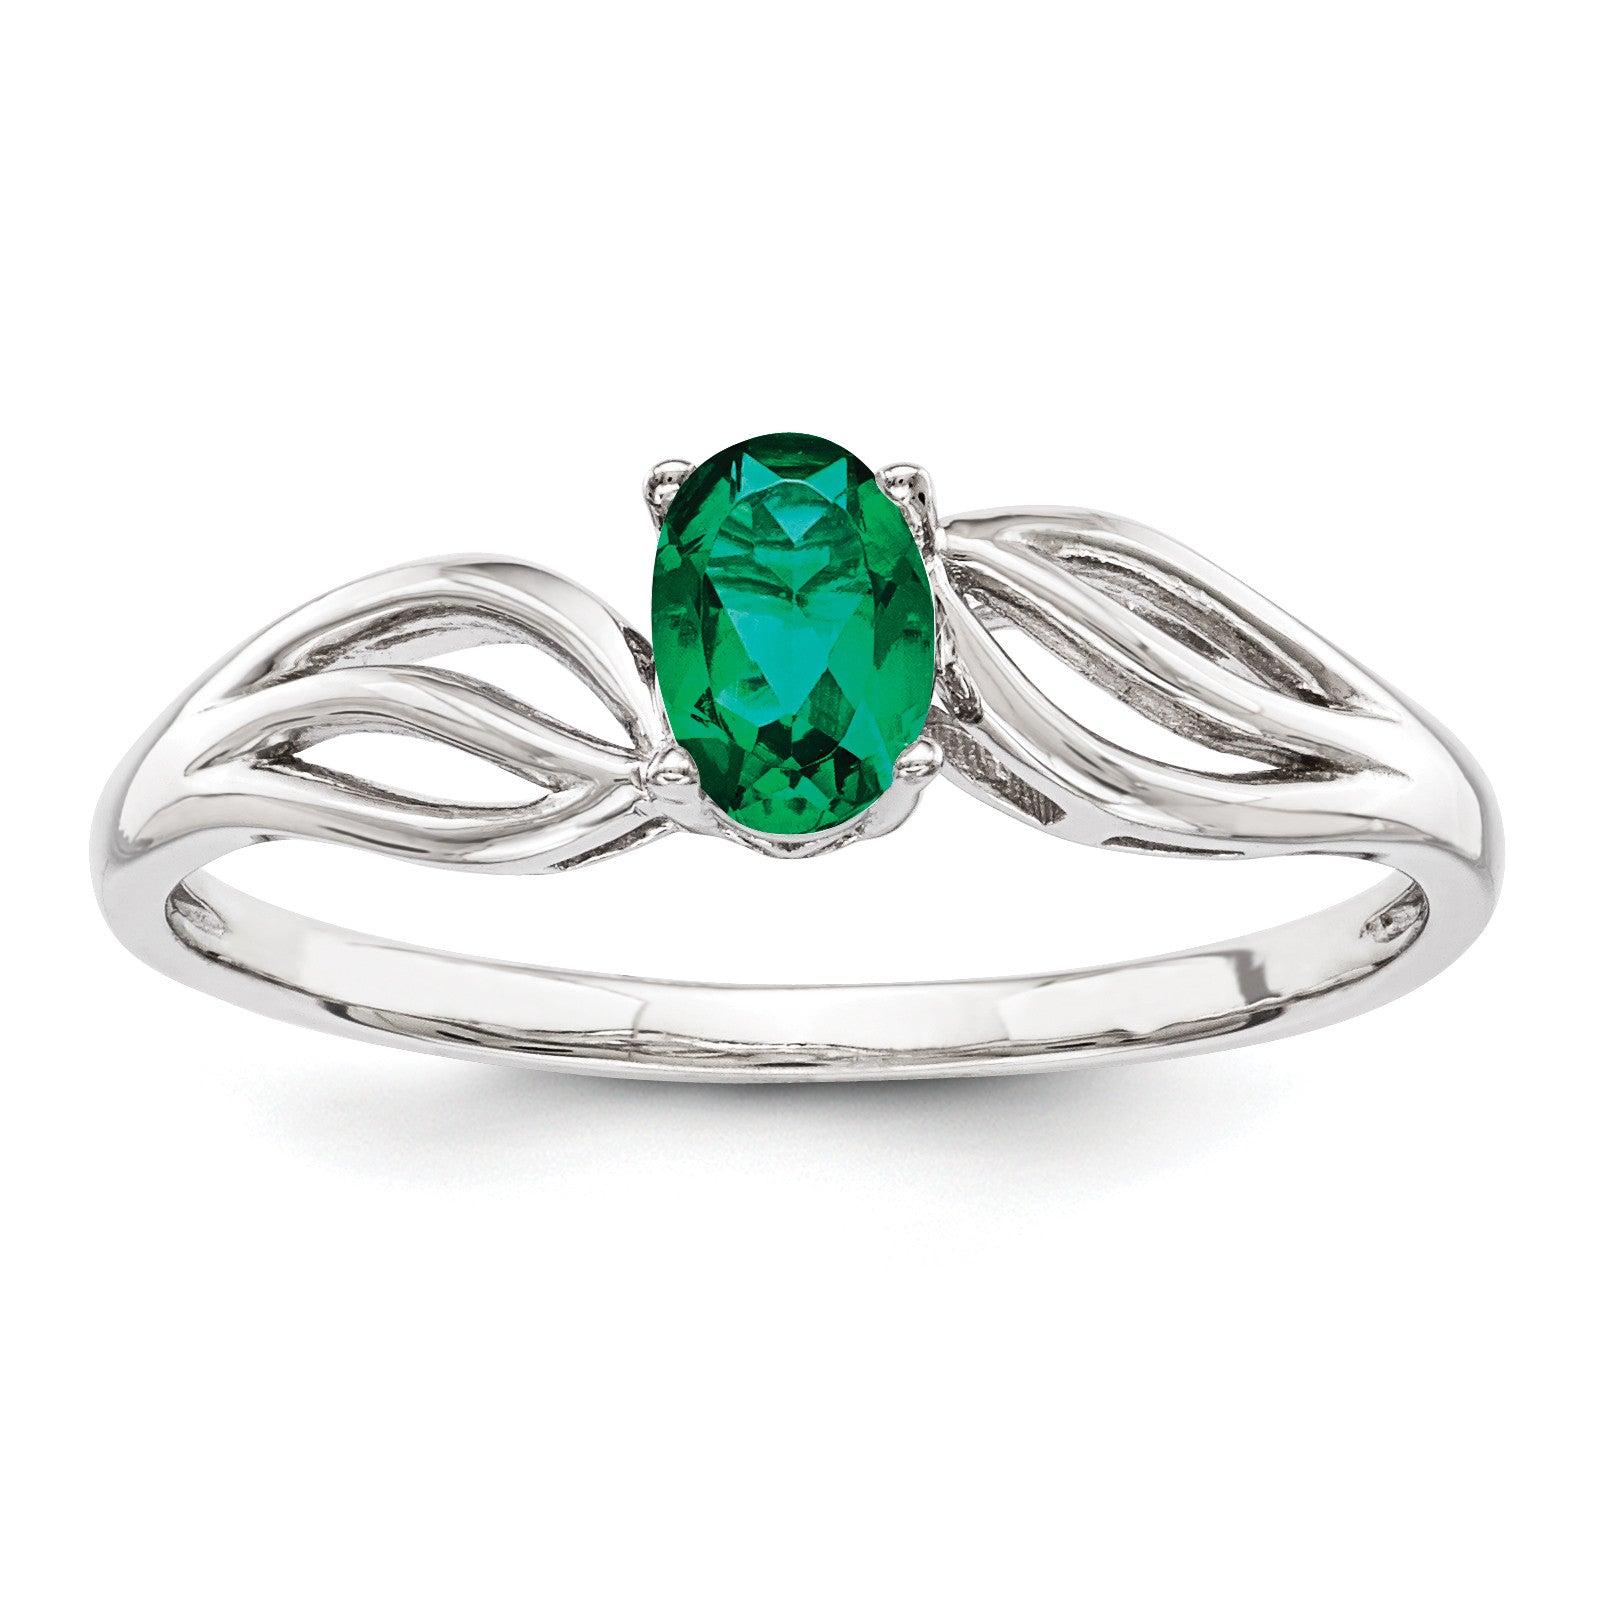 Sterling Silver Rhodium-plated Created Emerald Ring QBR17MAY - shirin-diamonds